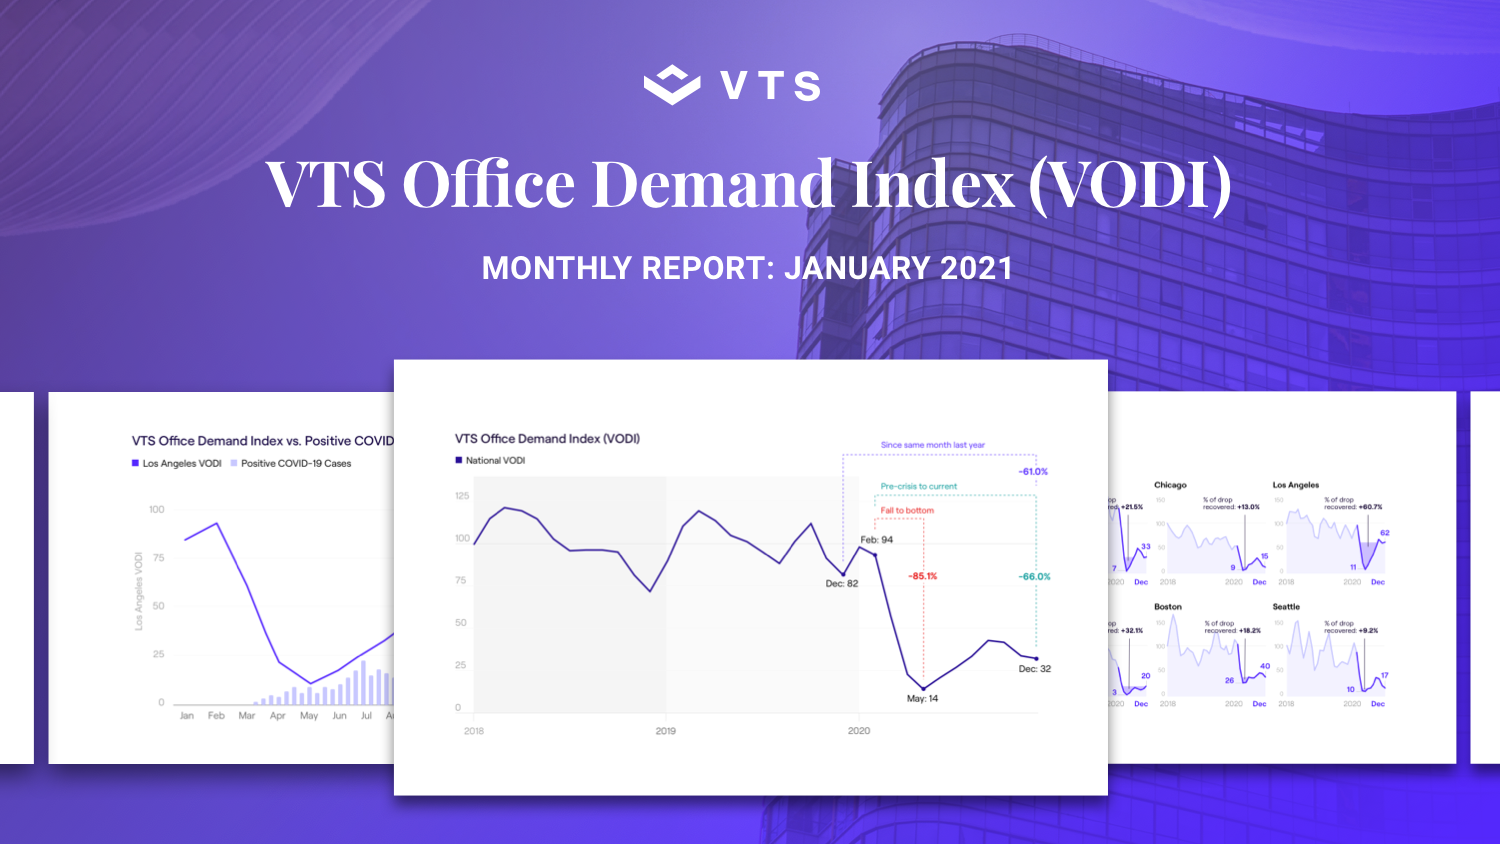 01.27.21-VTS-Office-Demand-Index-Jan-Report-Demand-for-Office-Space-Falls-as-COVID-19-Worsens